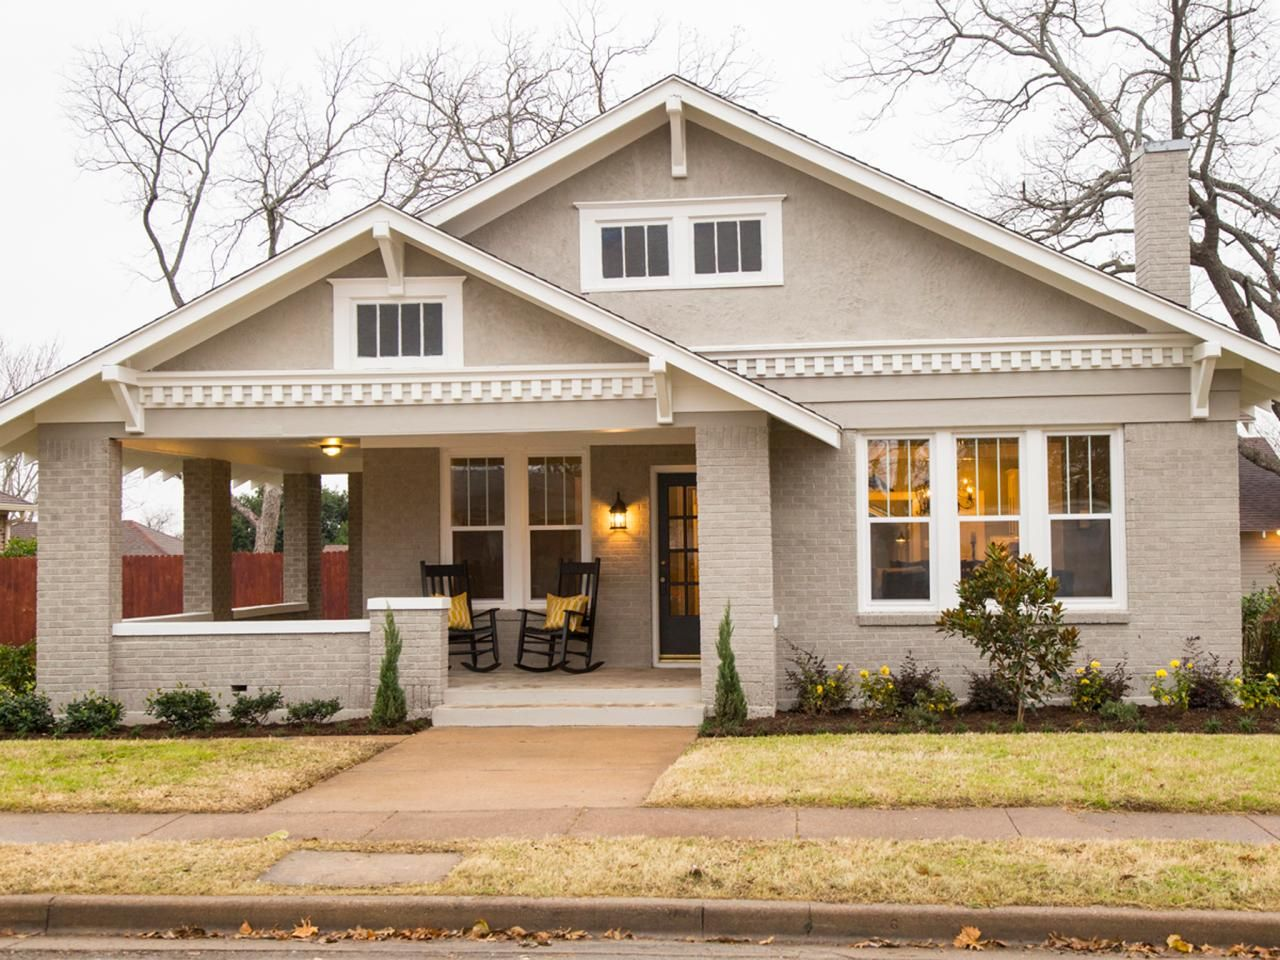 141 best front porch images on pinterest | craftsman bungalows